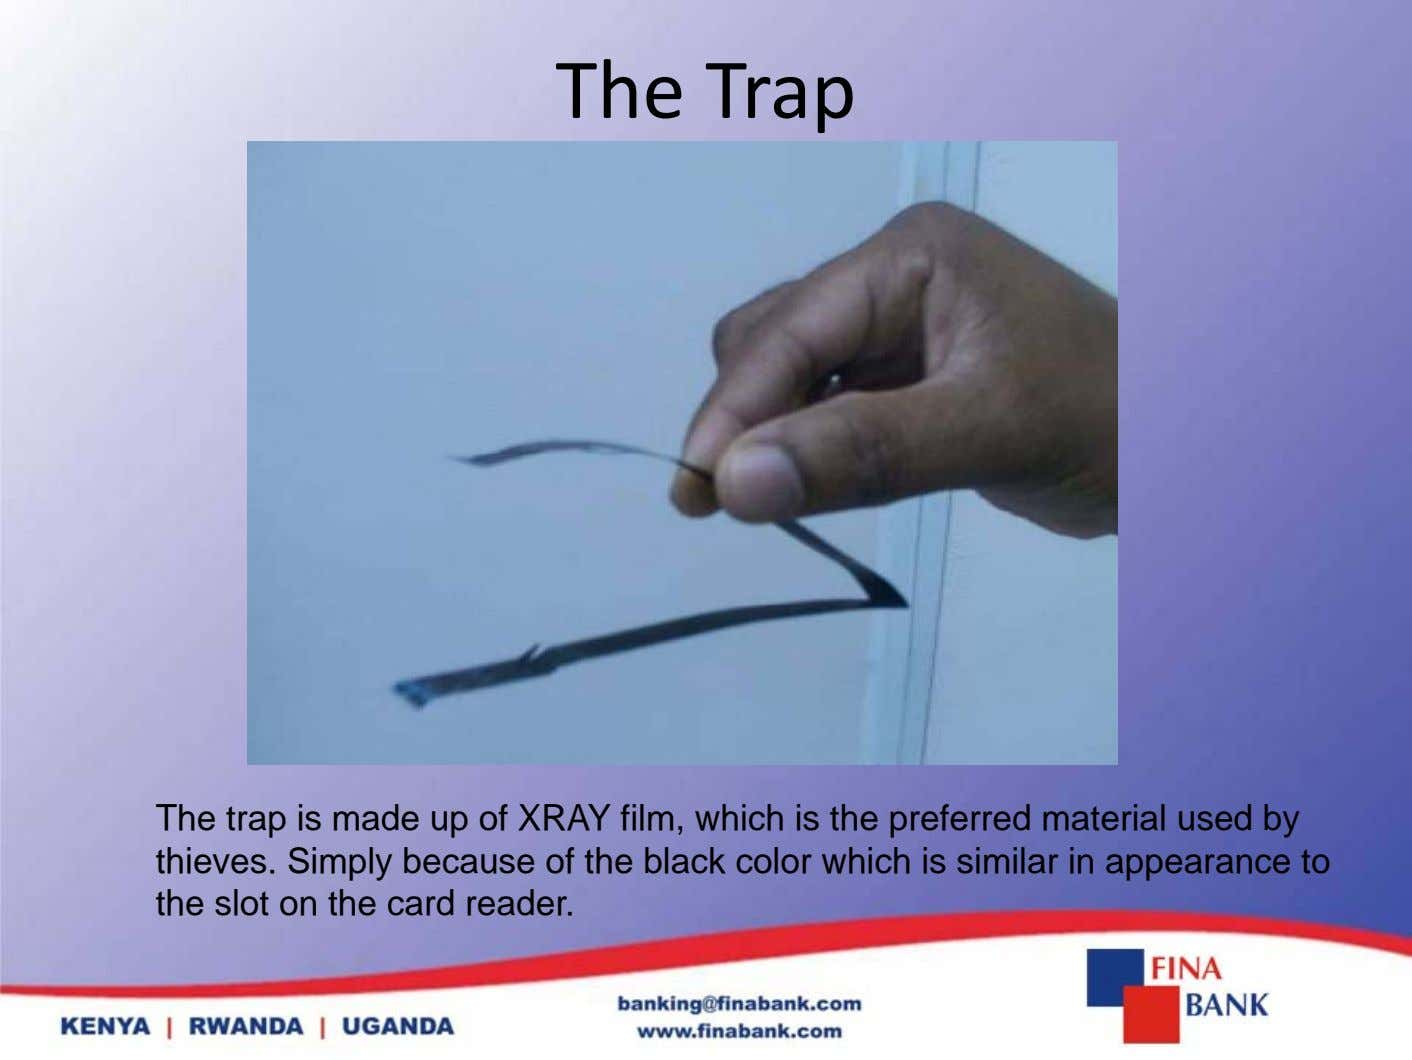 The Trap The trap is made up of XRAY film, which is the preferred material